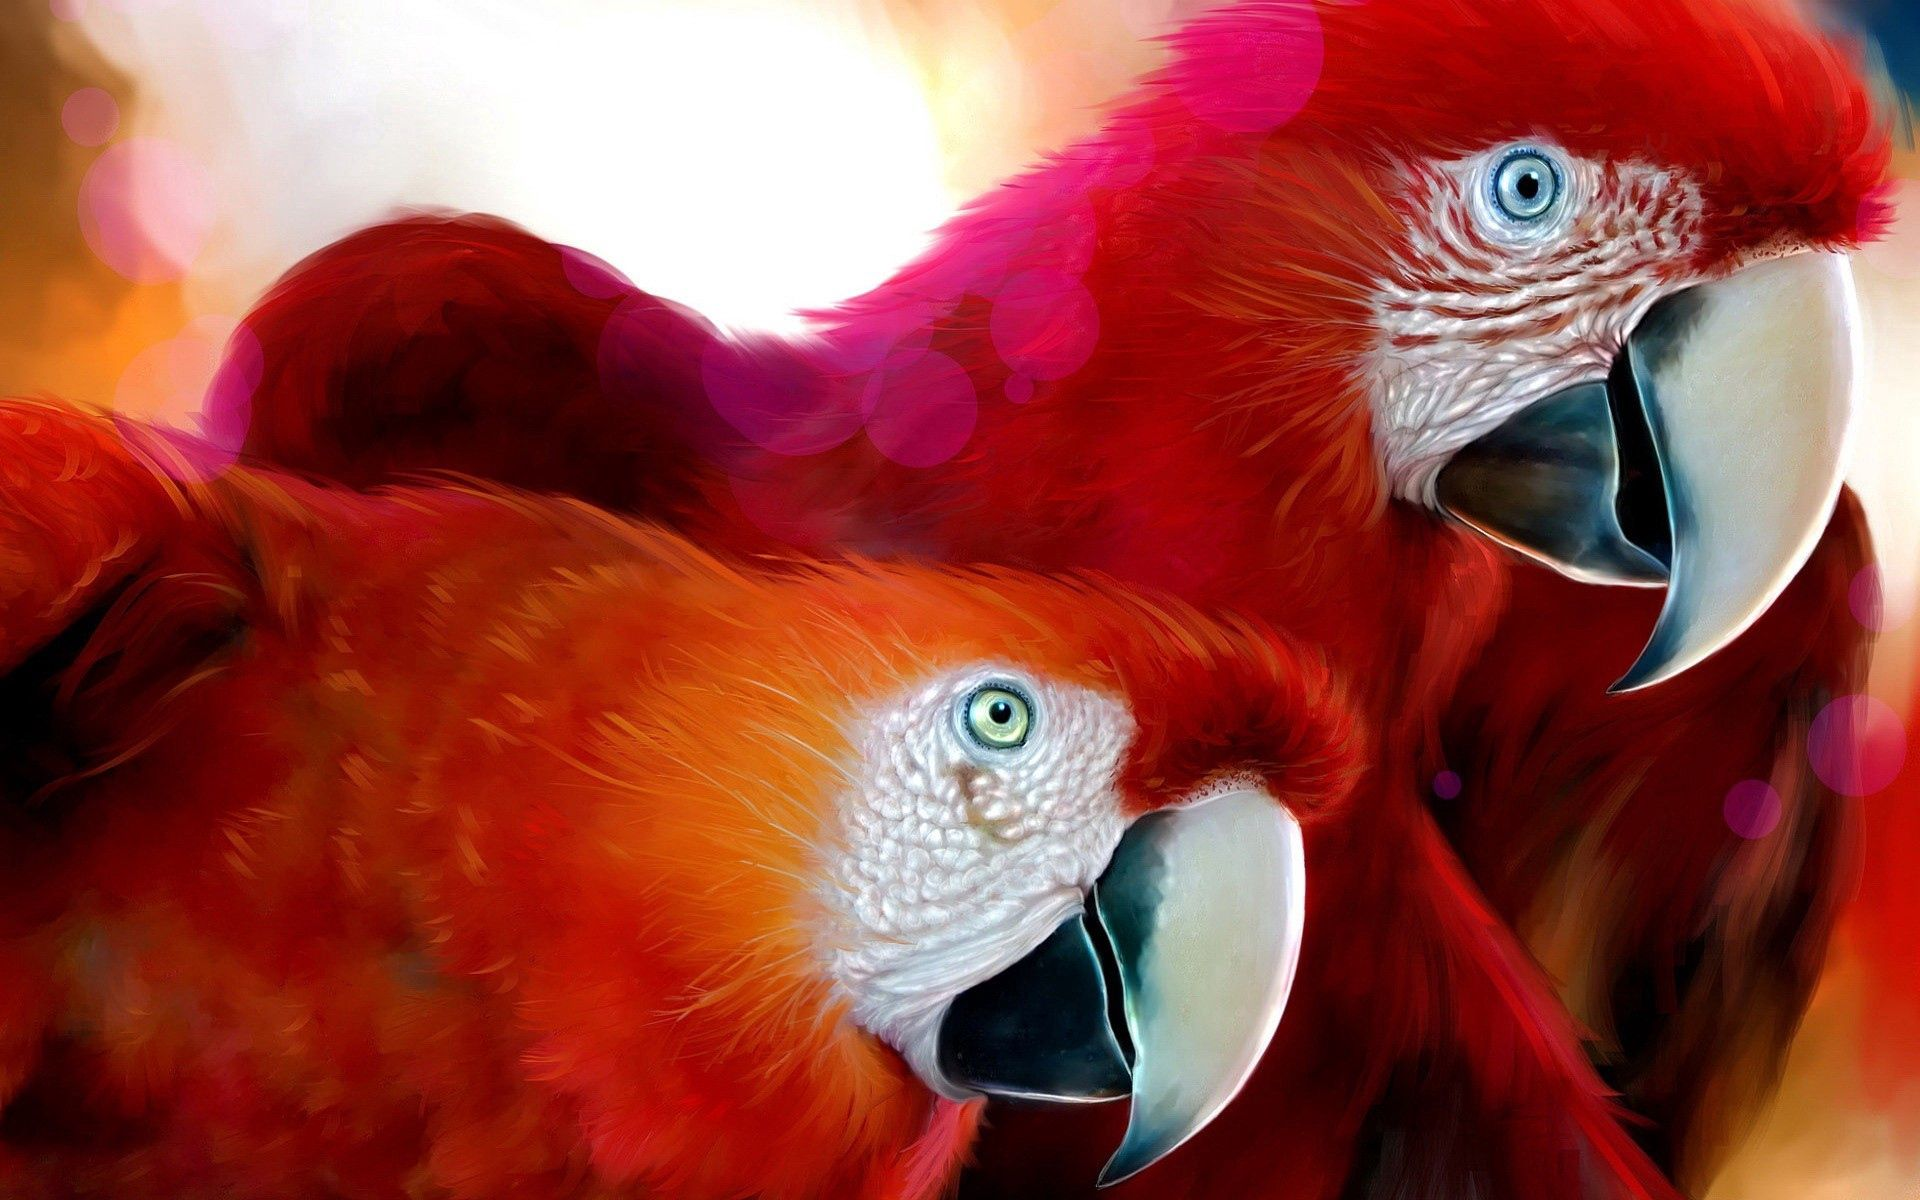 145107 download wallpaper Animals, Parrots, Couple, Pair, Beak, Color screensavers and pictures for free